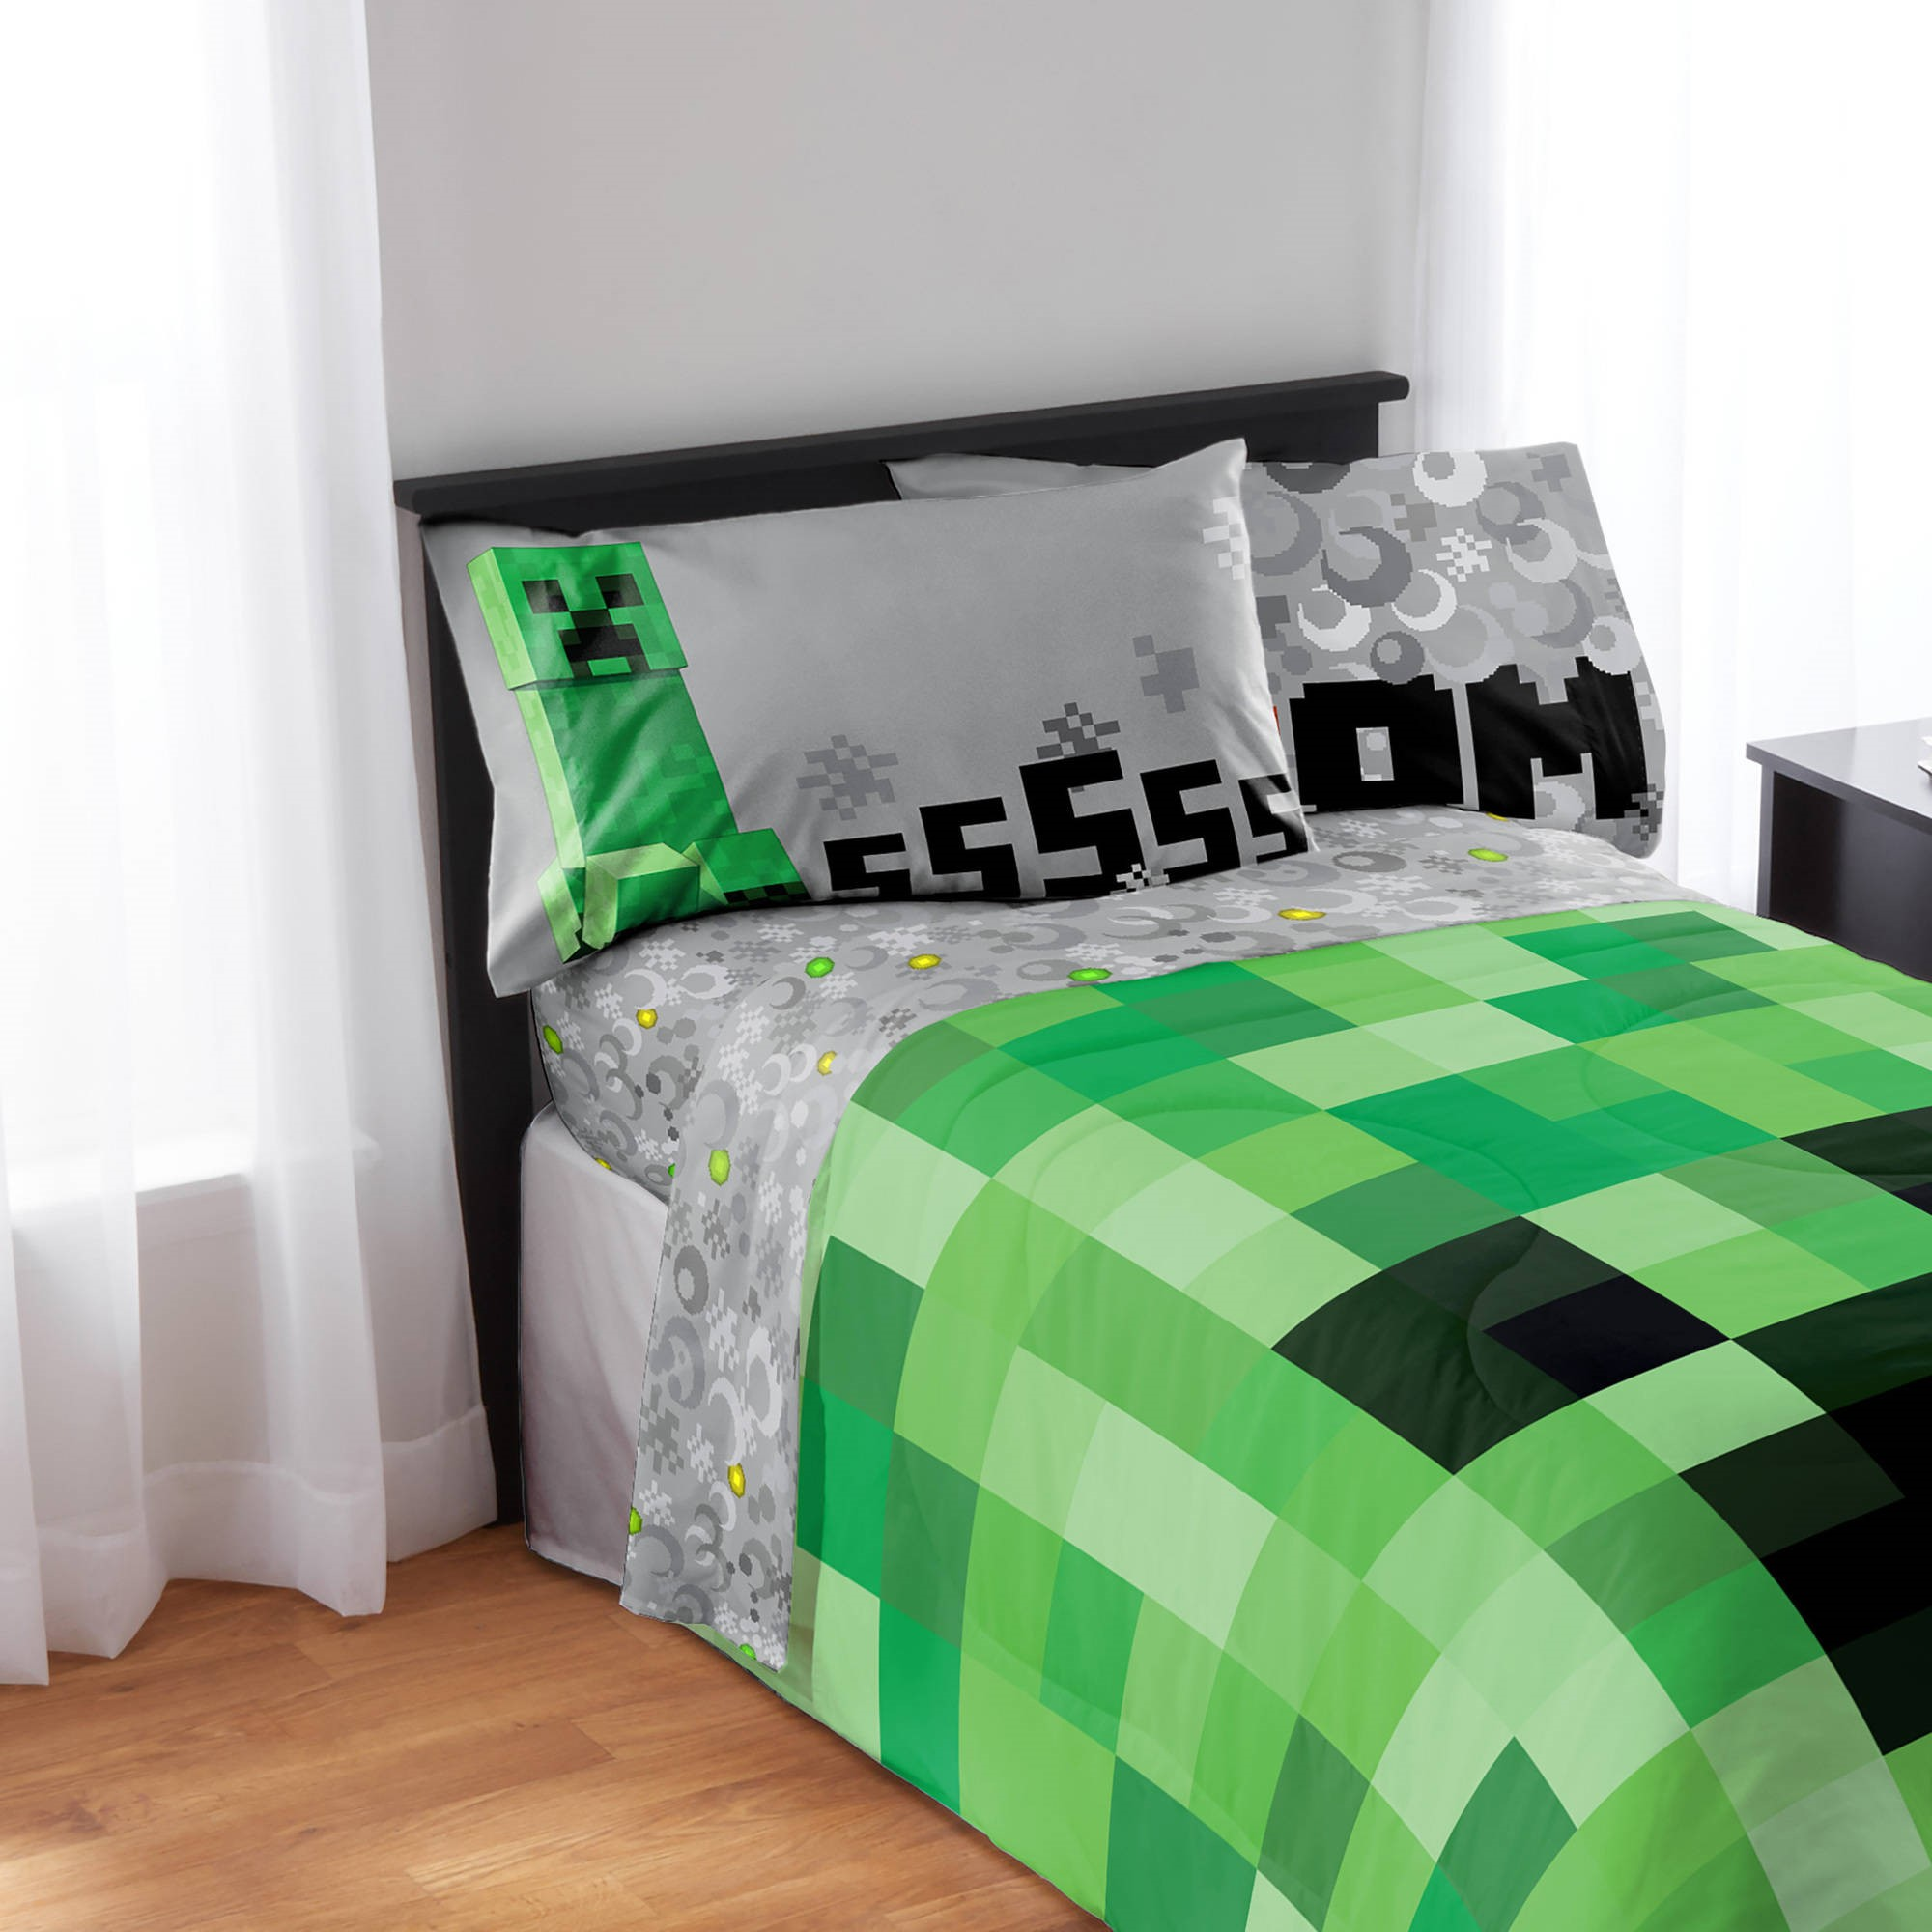 Minecraft Full Bedding Sheet Set